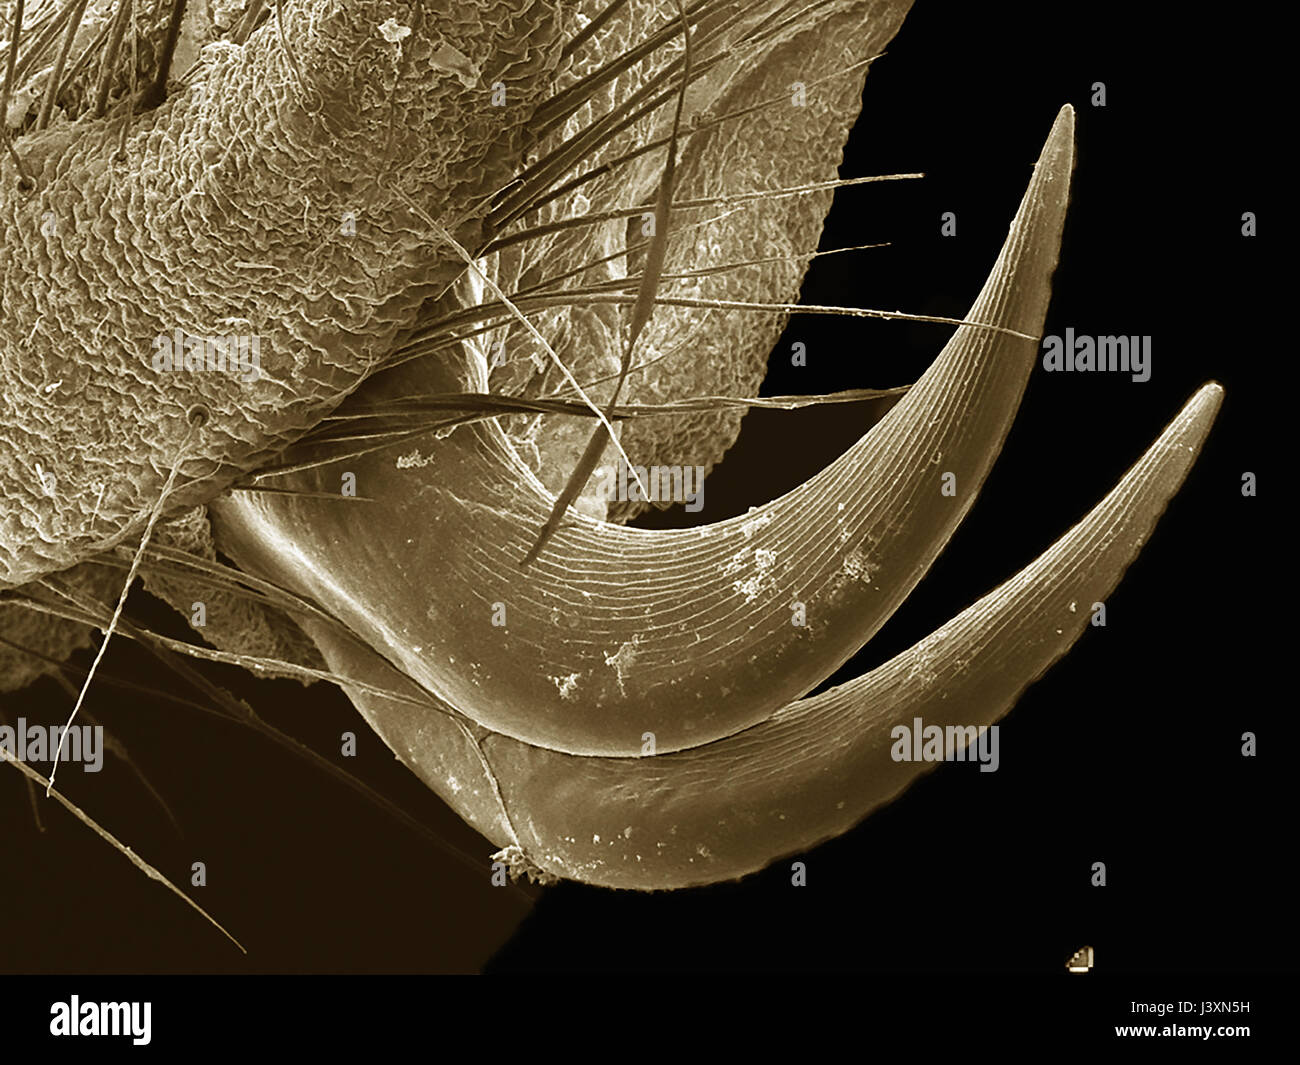 Tarsal claws of a dobsonfly (Megaloptera: Corydalidae) imaged in a scanning electron microscope - Stock Image